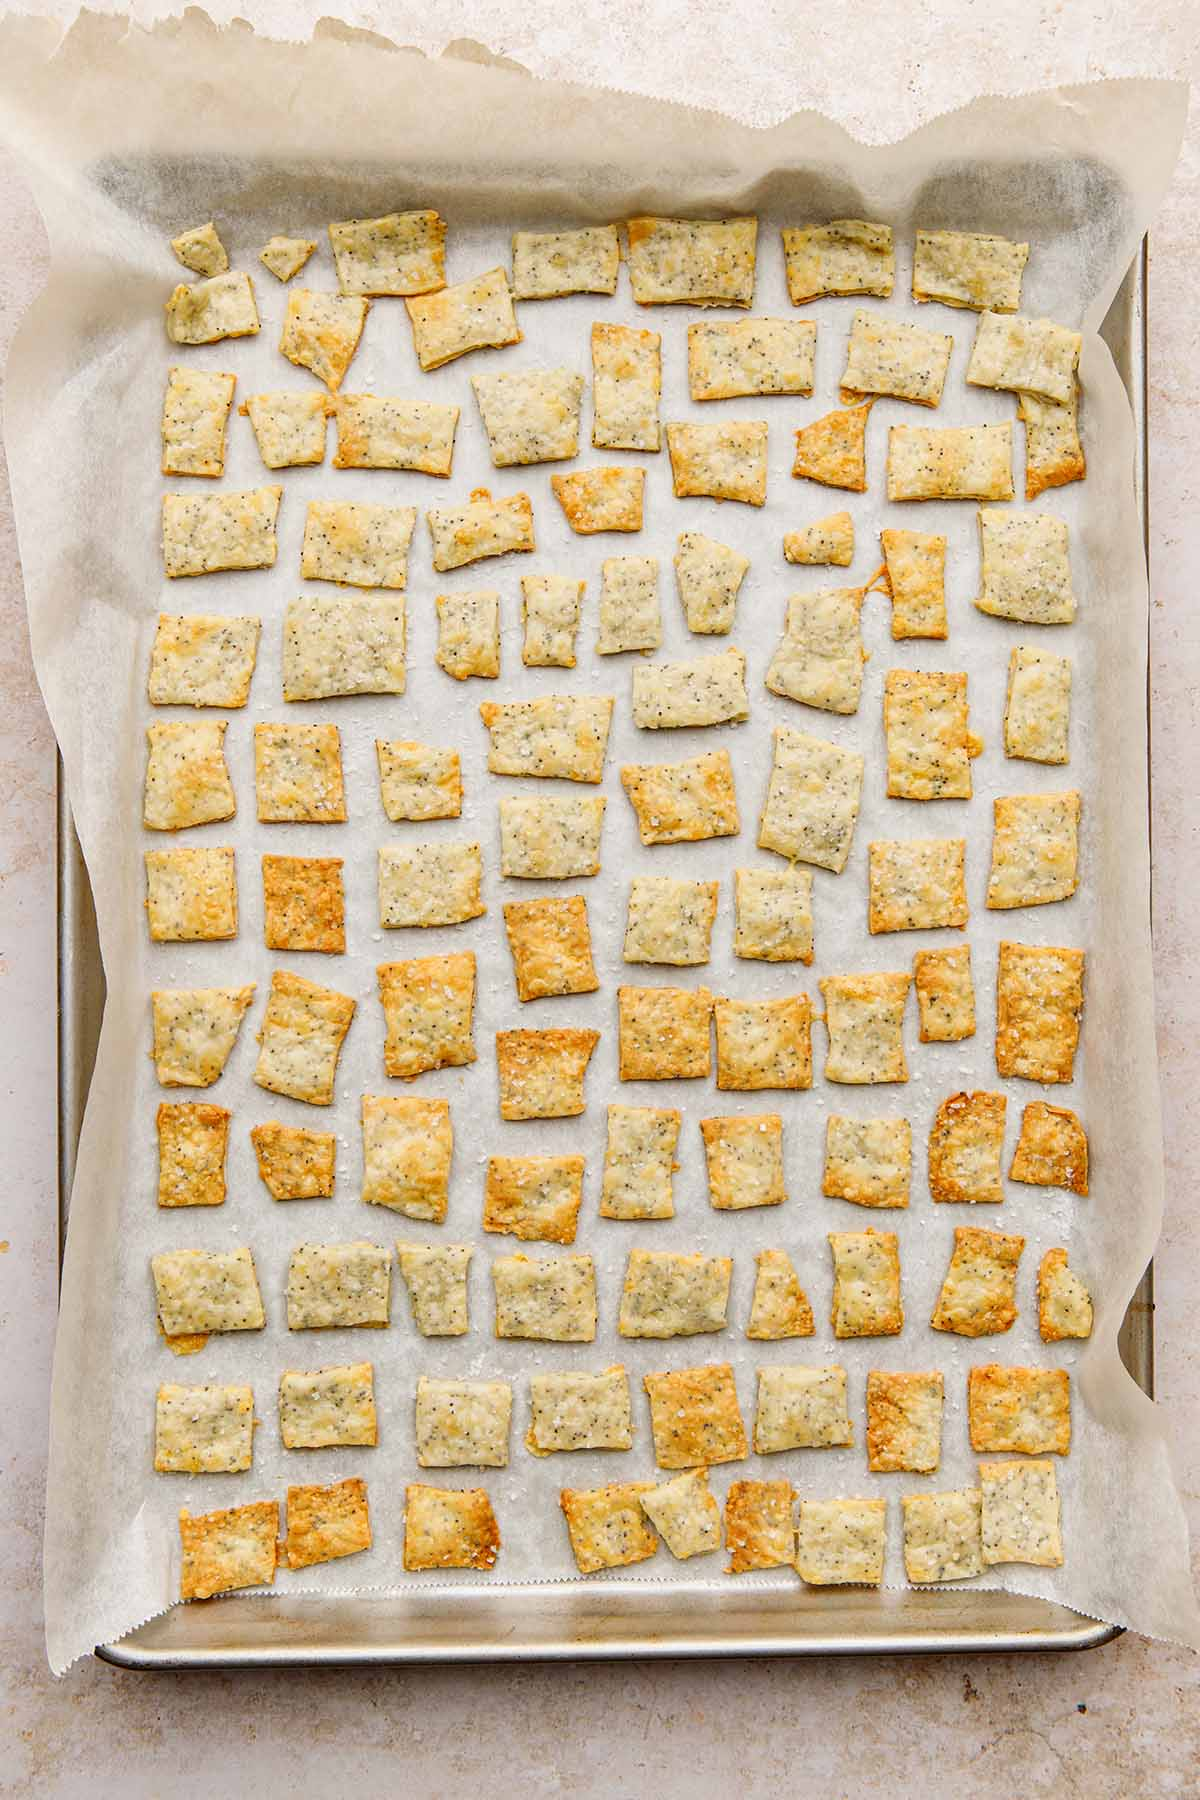 A baking tray lined with parchment paper filled with homemade white cheddar crackers.